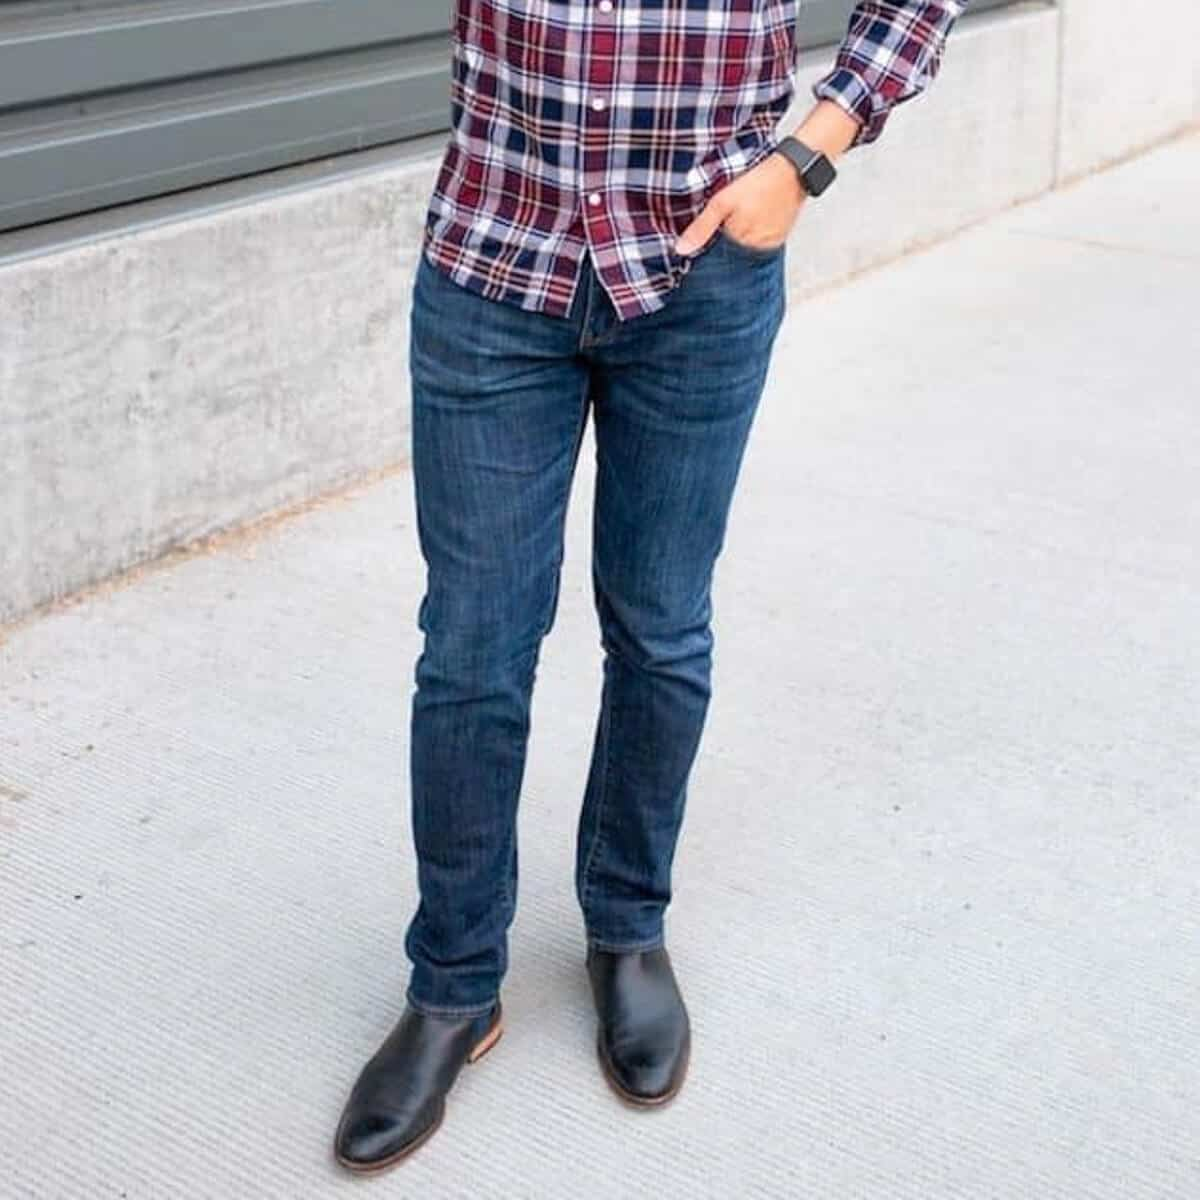 Person standing near a wall with a hand in their pocket.